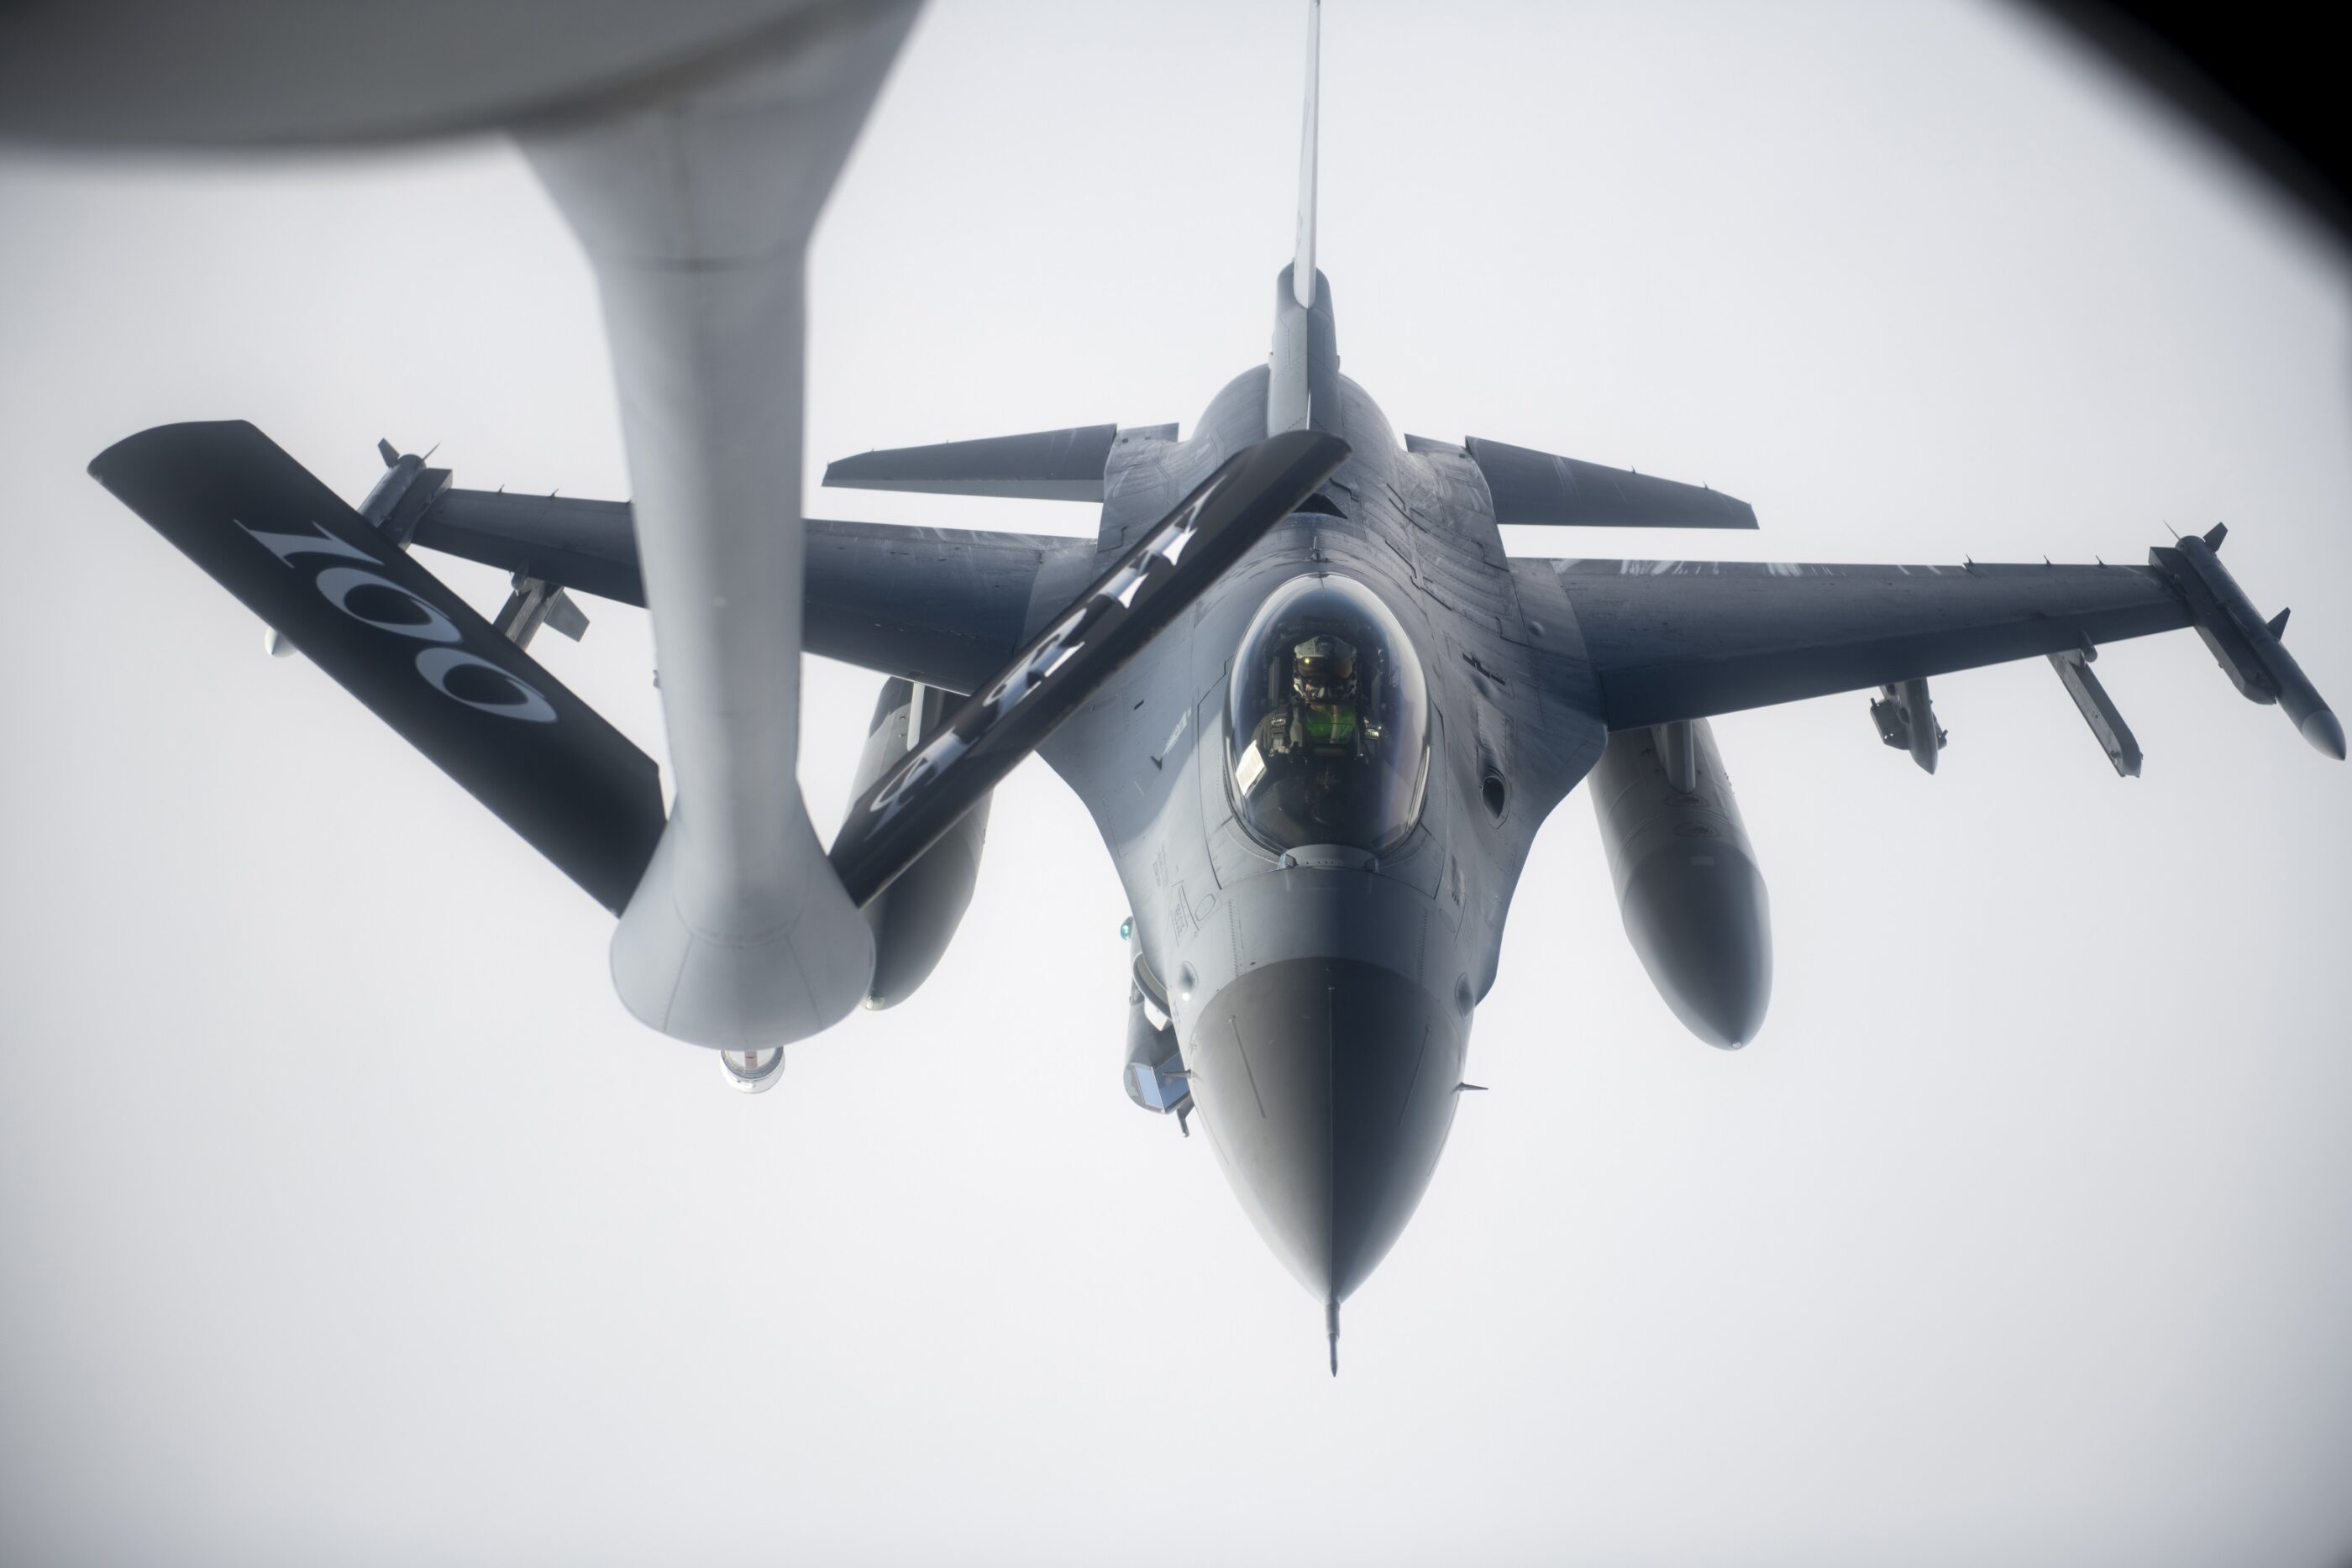 U.S. Air Force conducts military operations over Black Sea